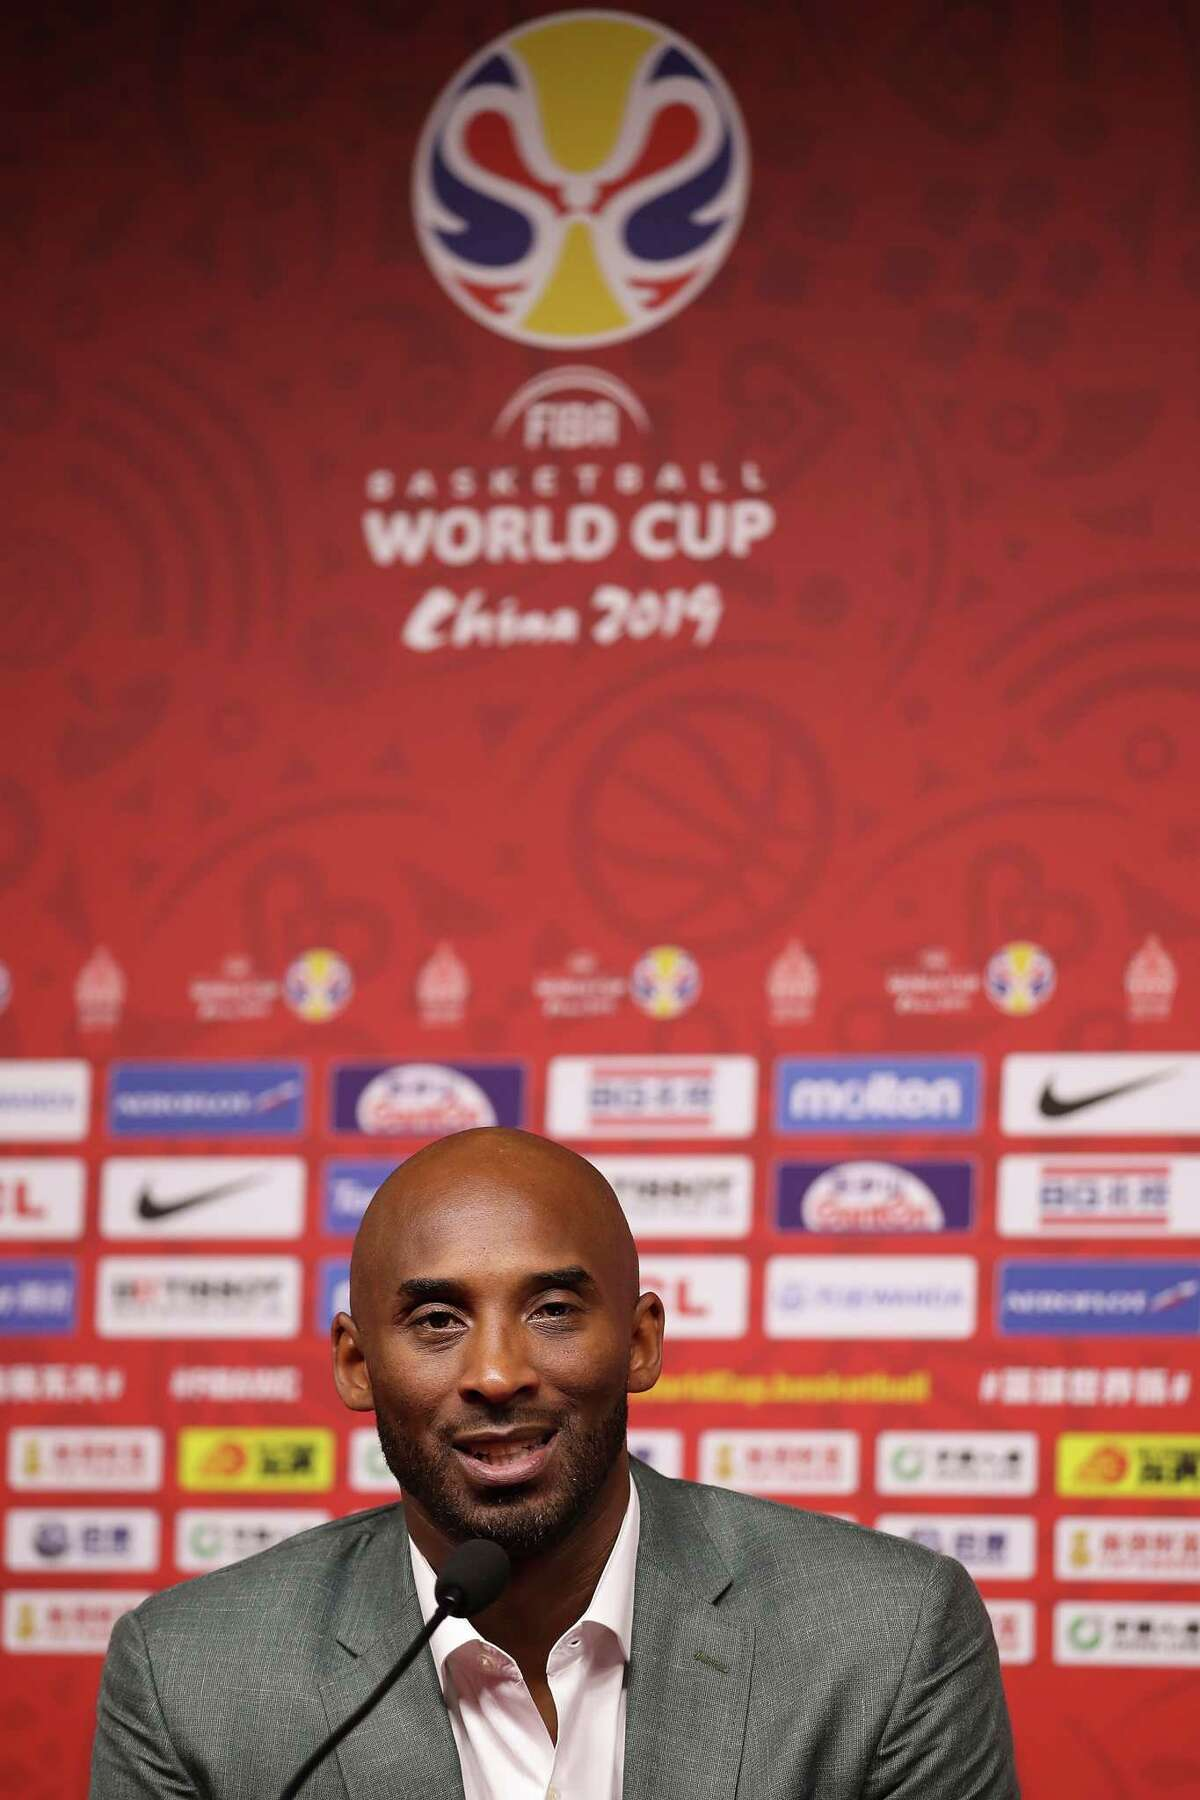 BEIJING, CHINA - SEPTEMBER 13: Former basketball player Kobe Bryant talks to the media after the game of Team Spain against Team Australia during the semi-finals of 2019 FIBA World Cup at Beijing Wukesong Sport Arena on September 13, 2019 in Beijing, China. (Photo by Lintao Zhang/Getty Images)